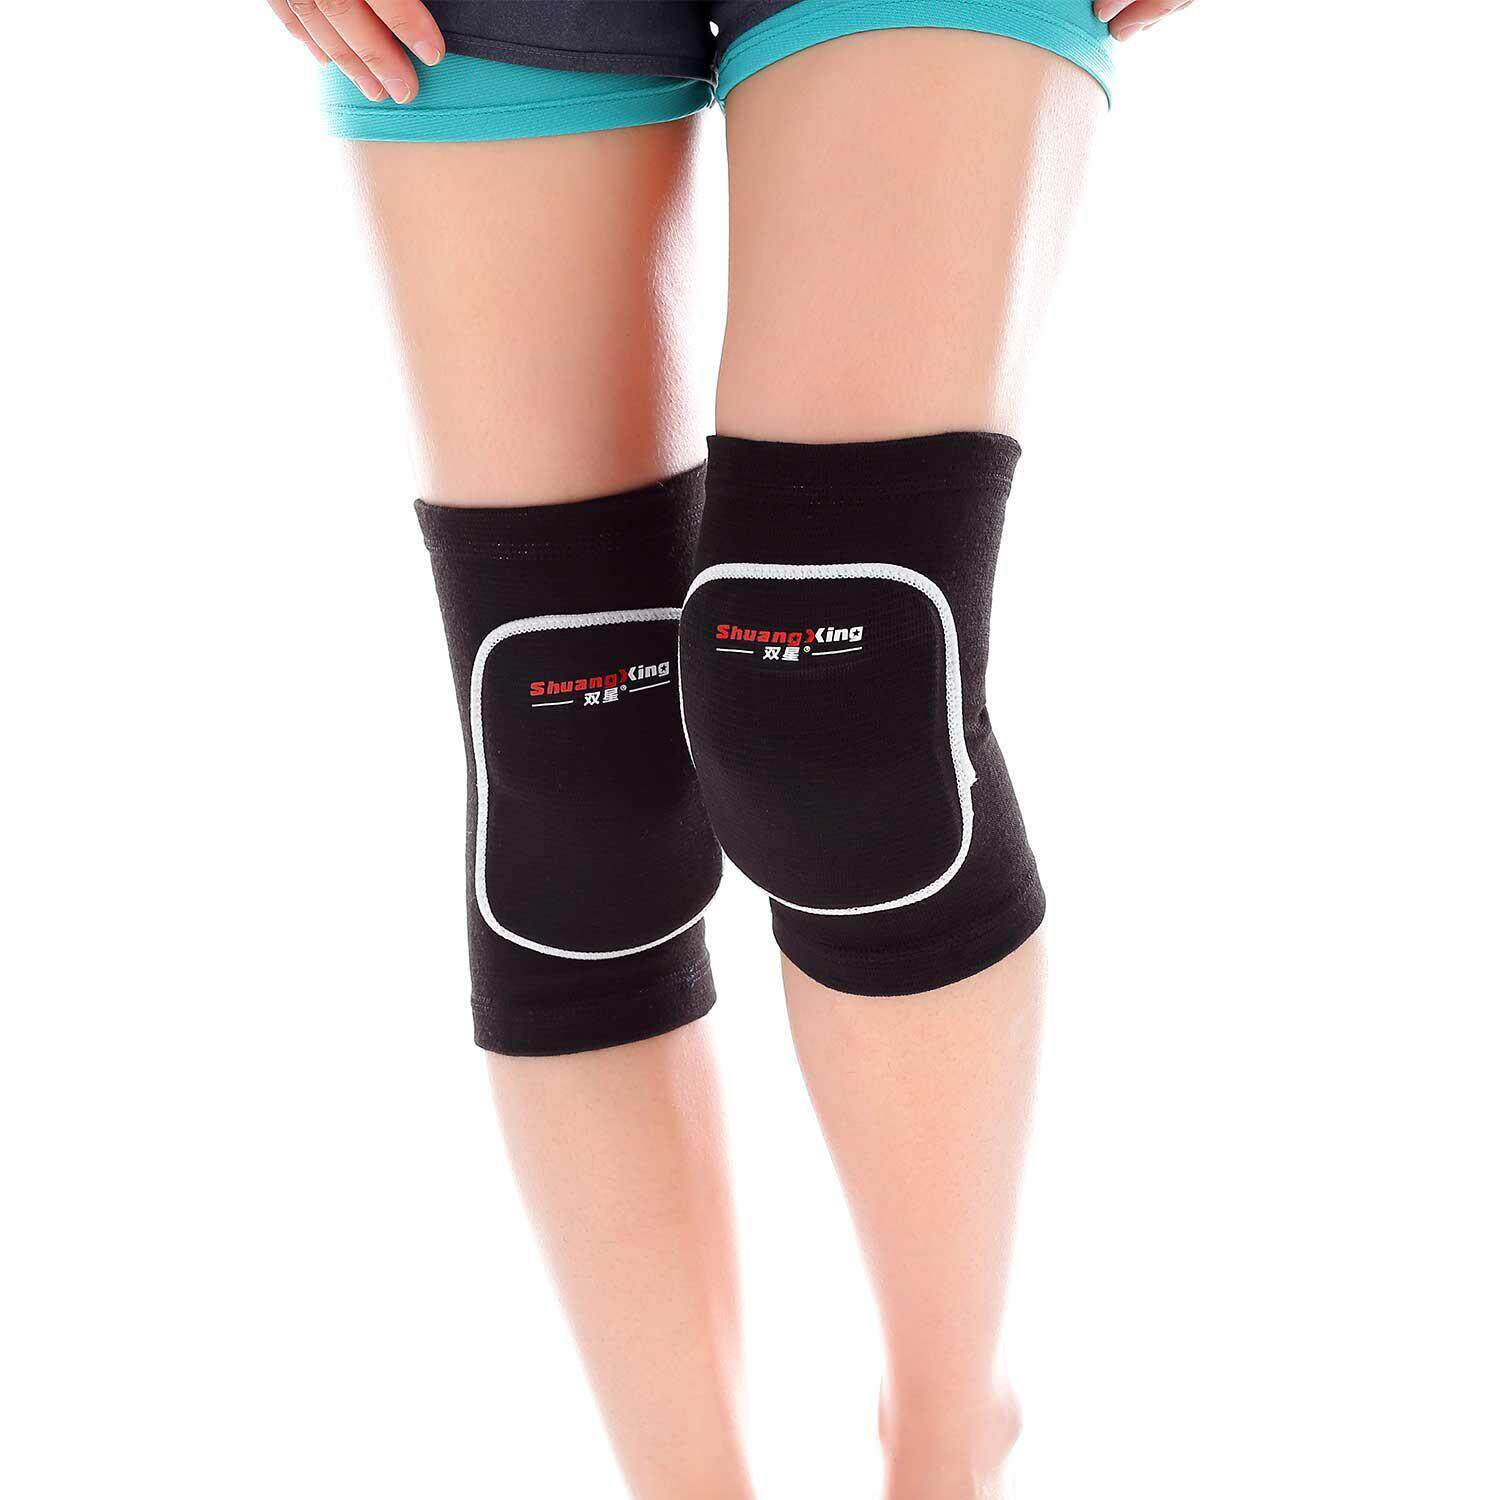 NiceToEmpty Knee Pads,Protective Thick Sponge Anti-Collision Kneepads Protector Non-slip Wrestling Dance Volleyball Knee Pads Support Sleeve for Outdoor Sport(1 Pair)